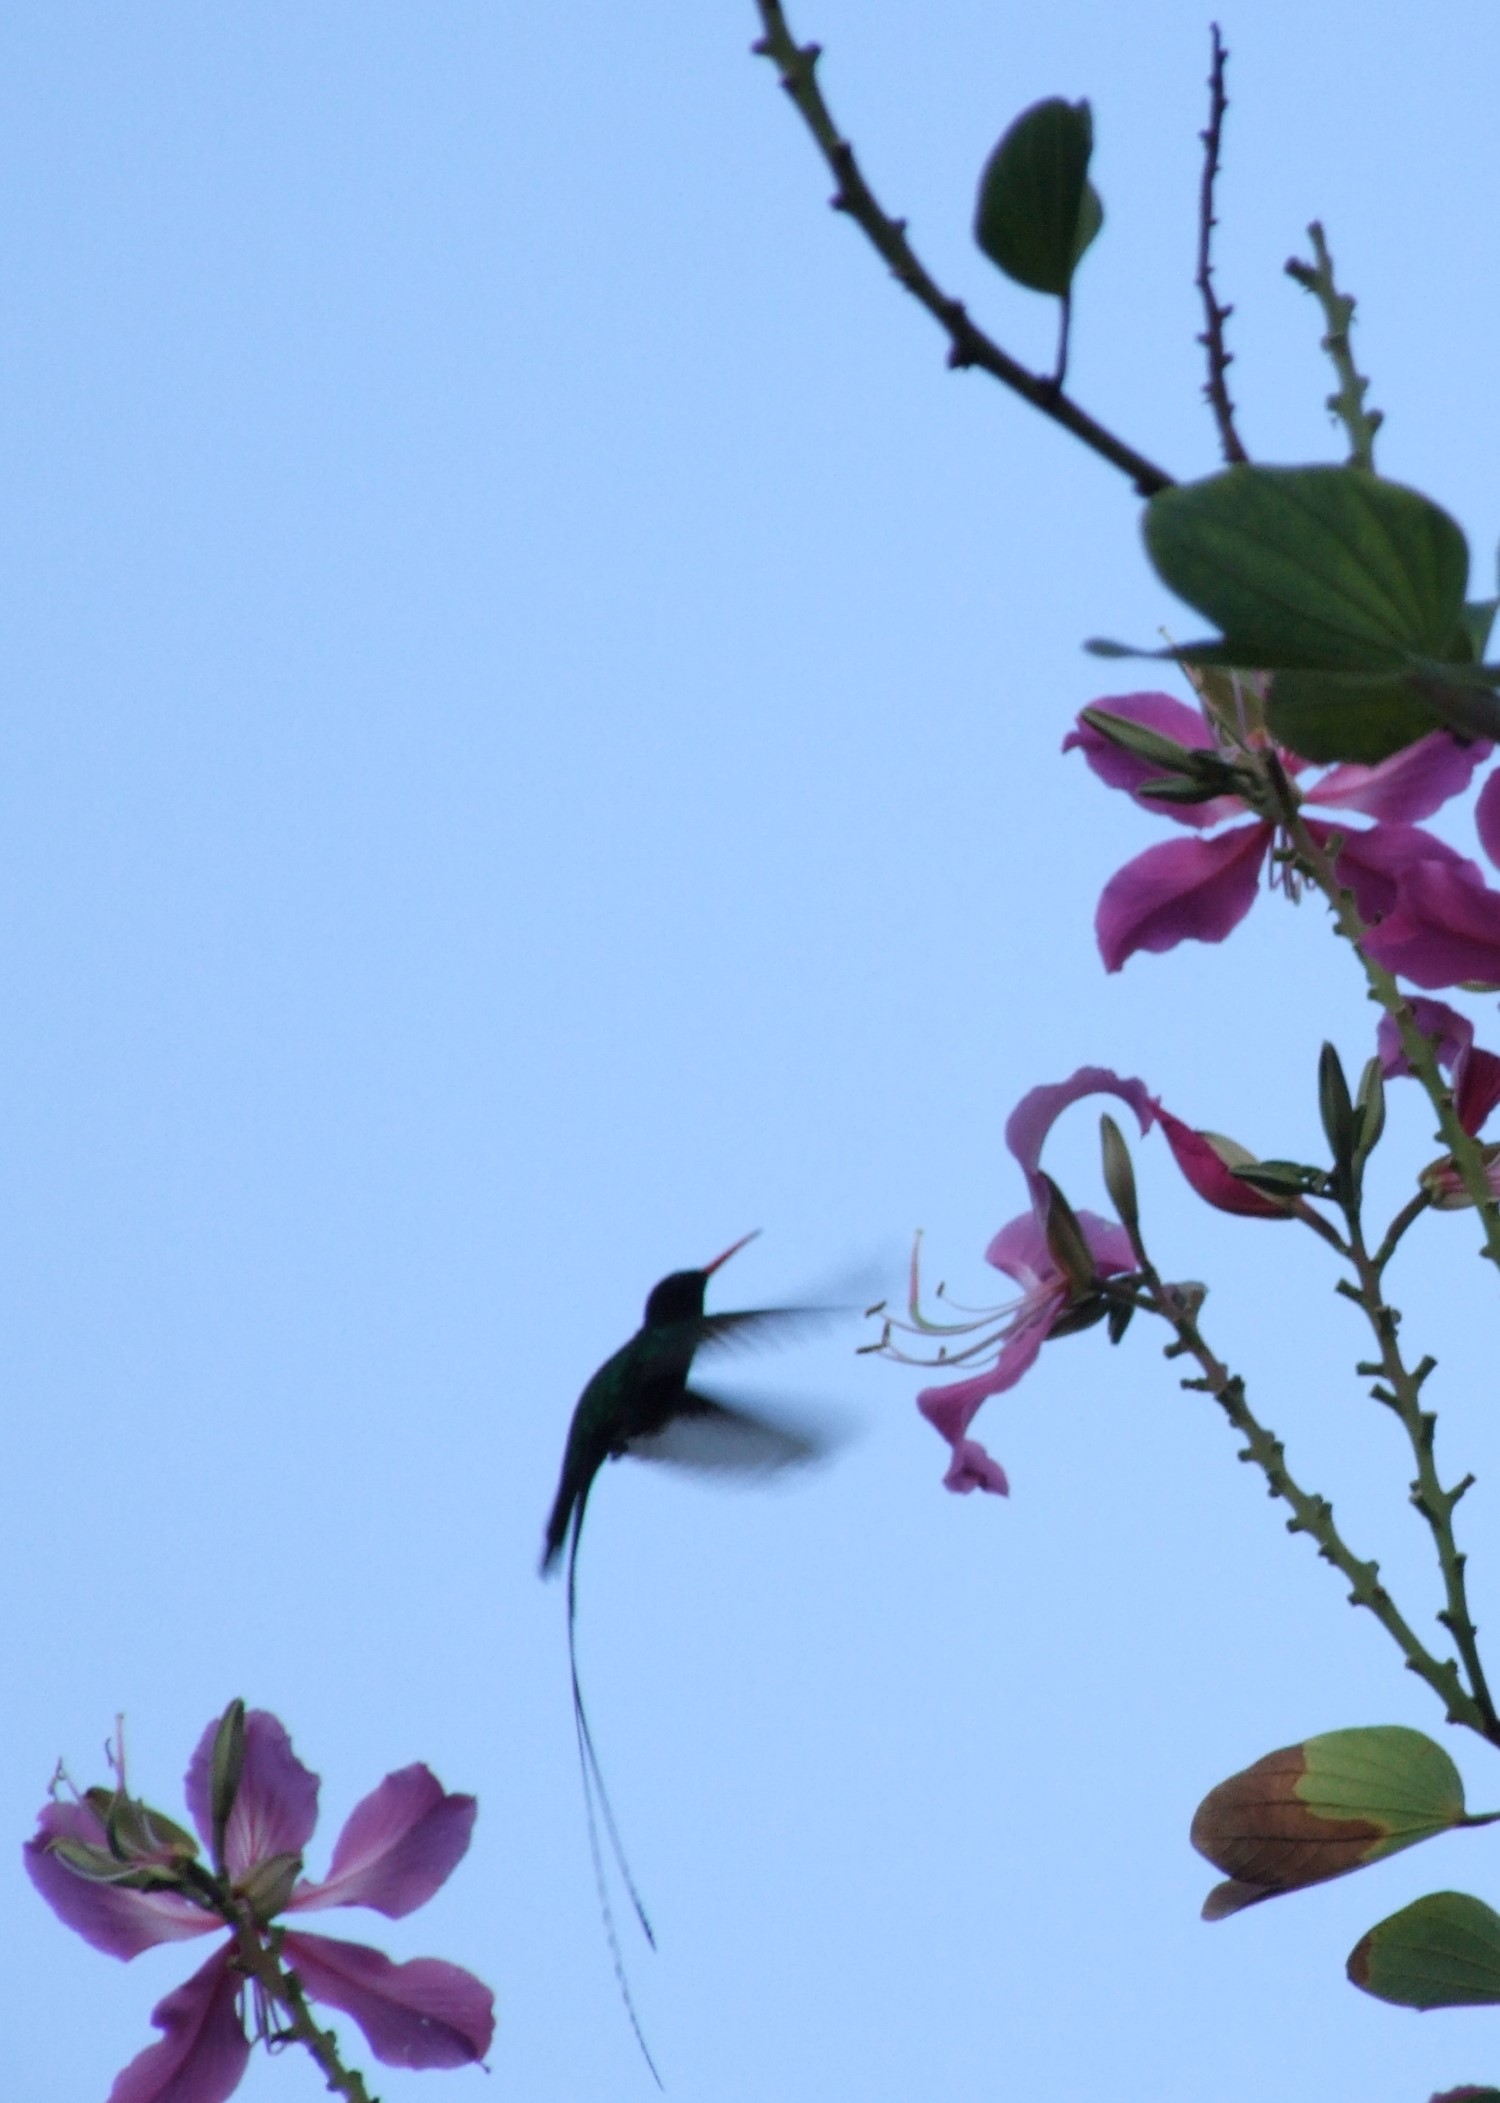 Silhouette of bird with long streamer feathers for tail